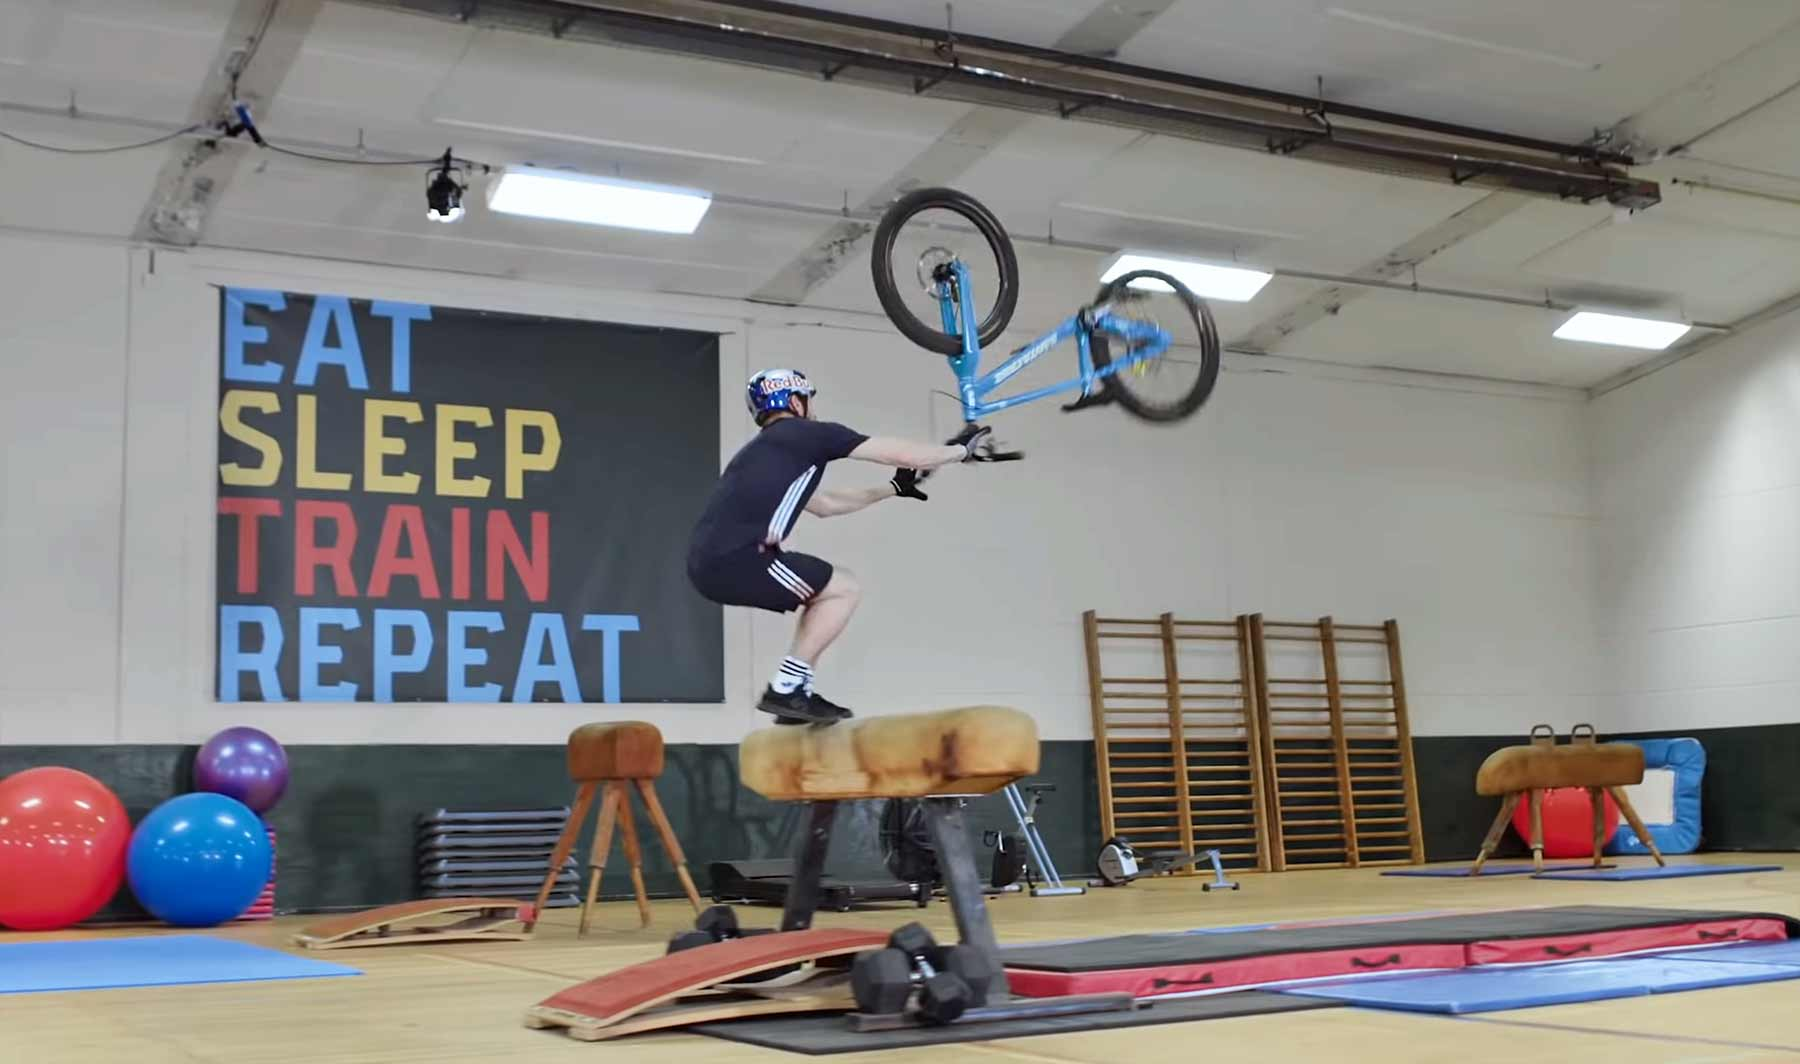 Danny MacAskill macht Trial-Tricks in der Turnhalle